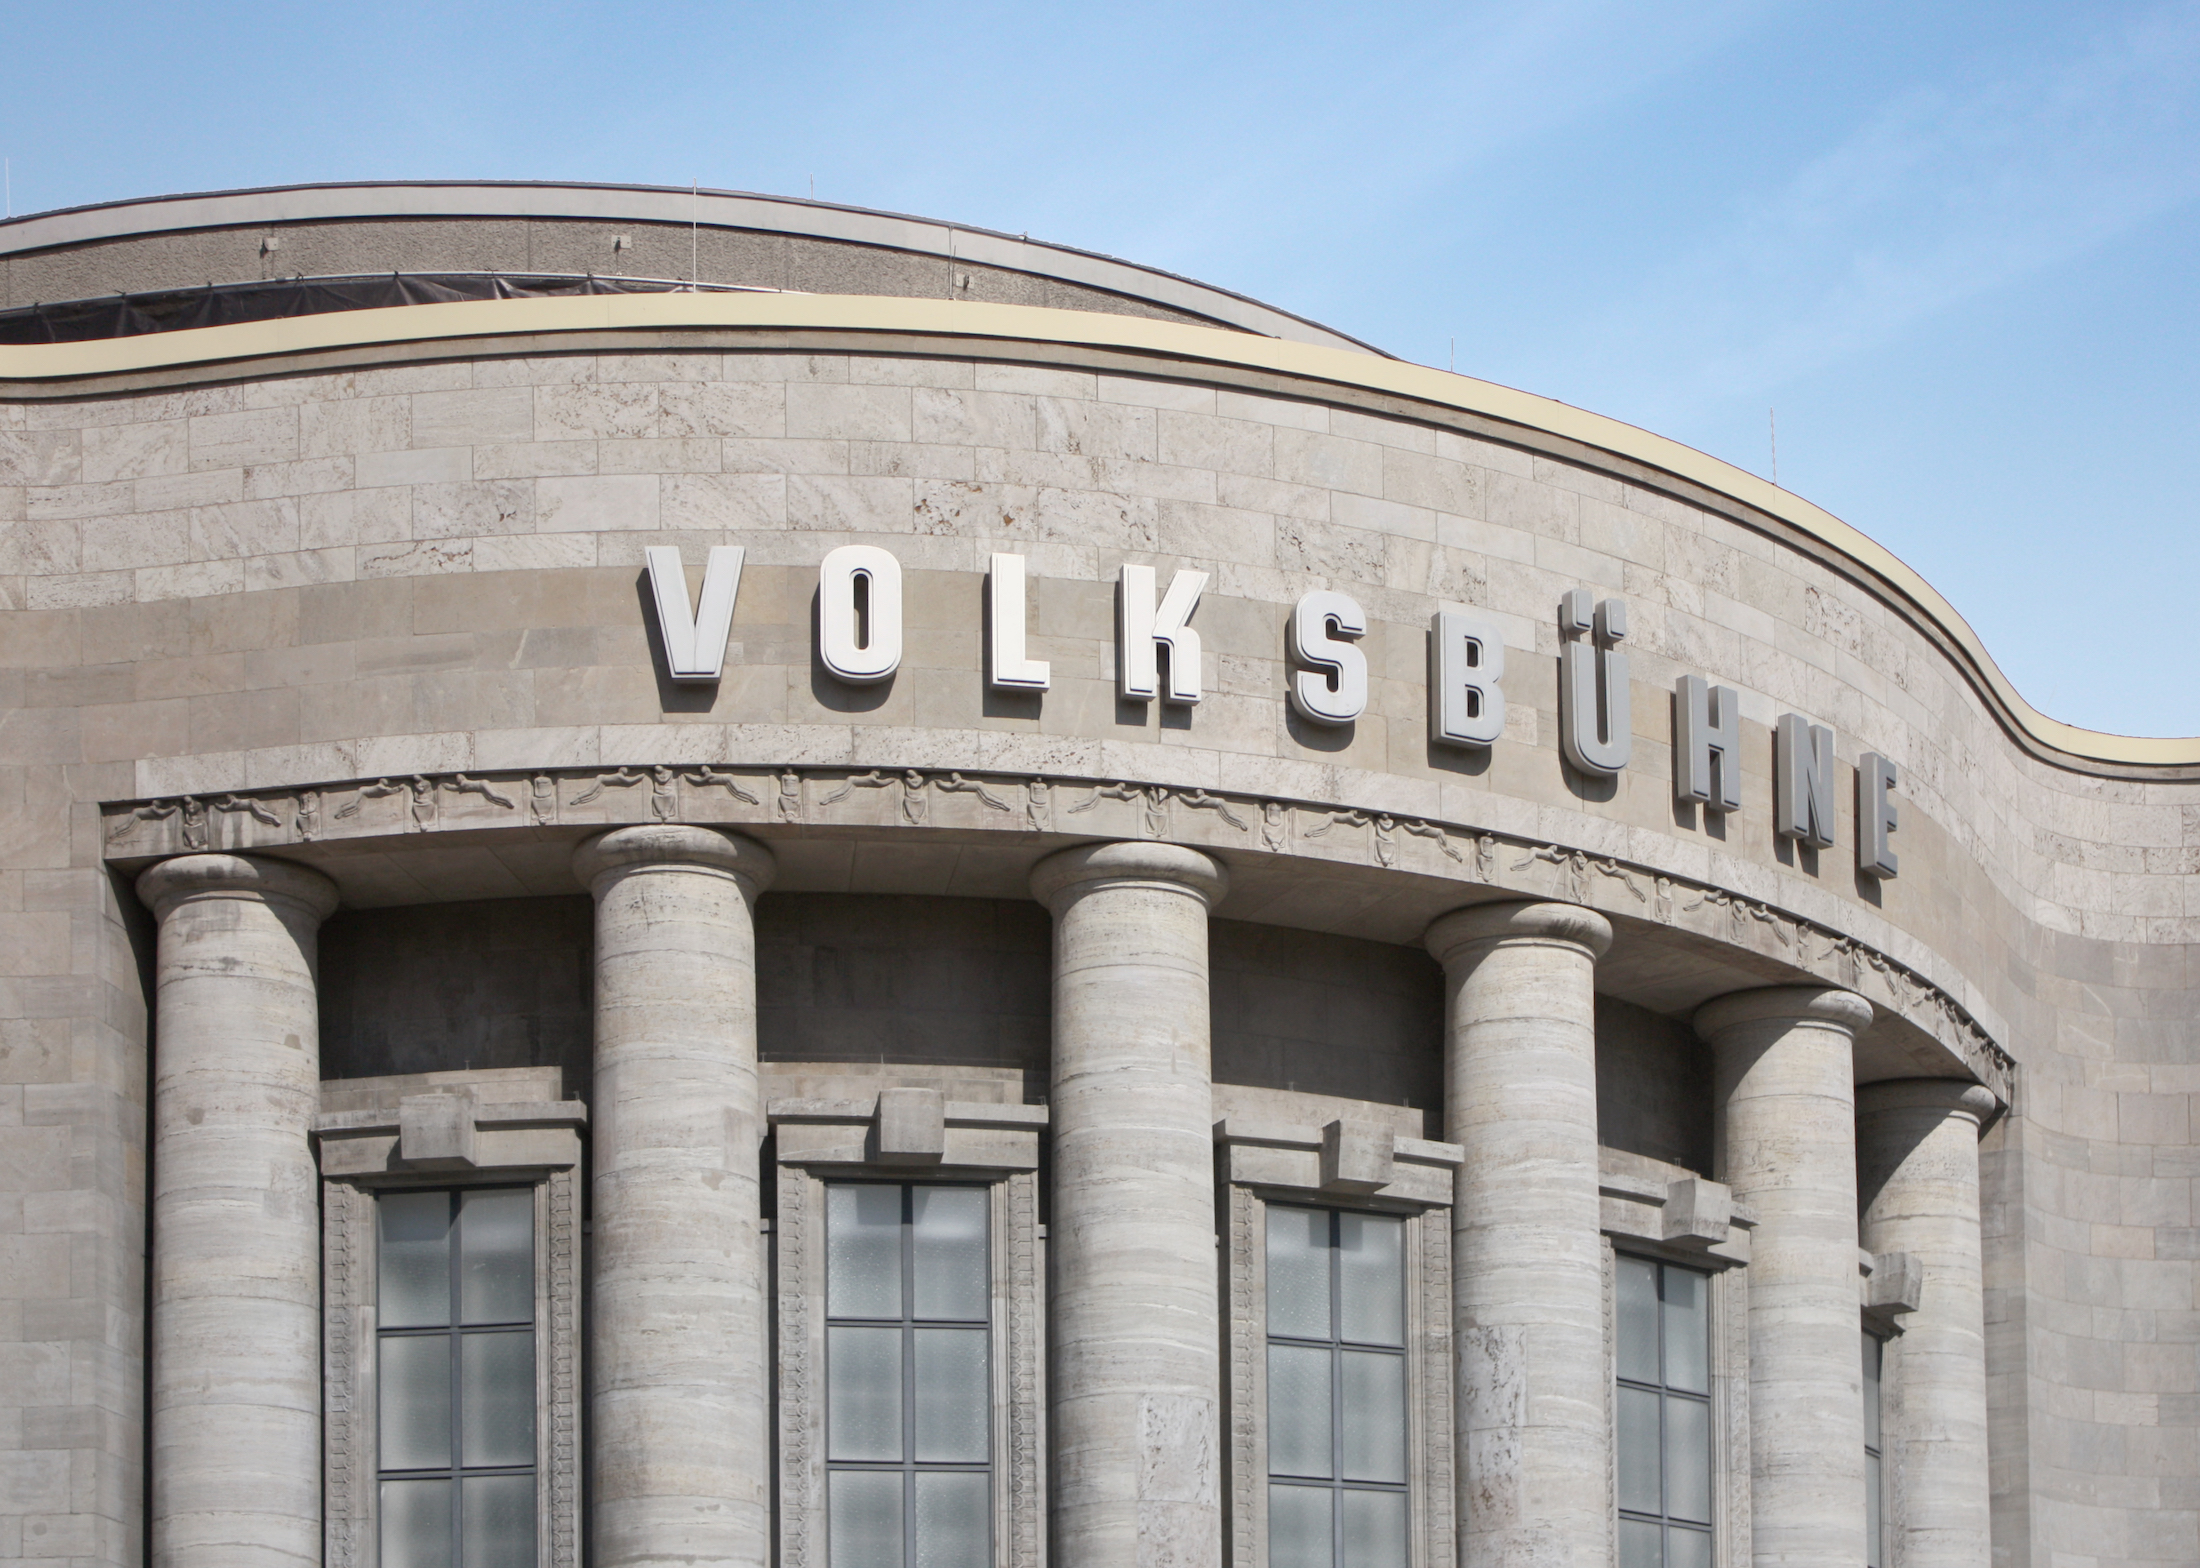 The Volksbühne in Scheunenviertel.